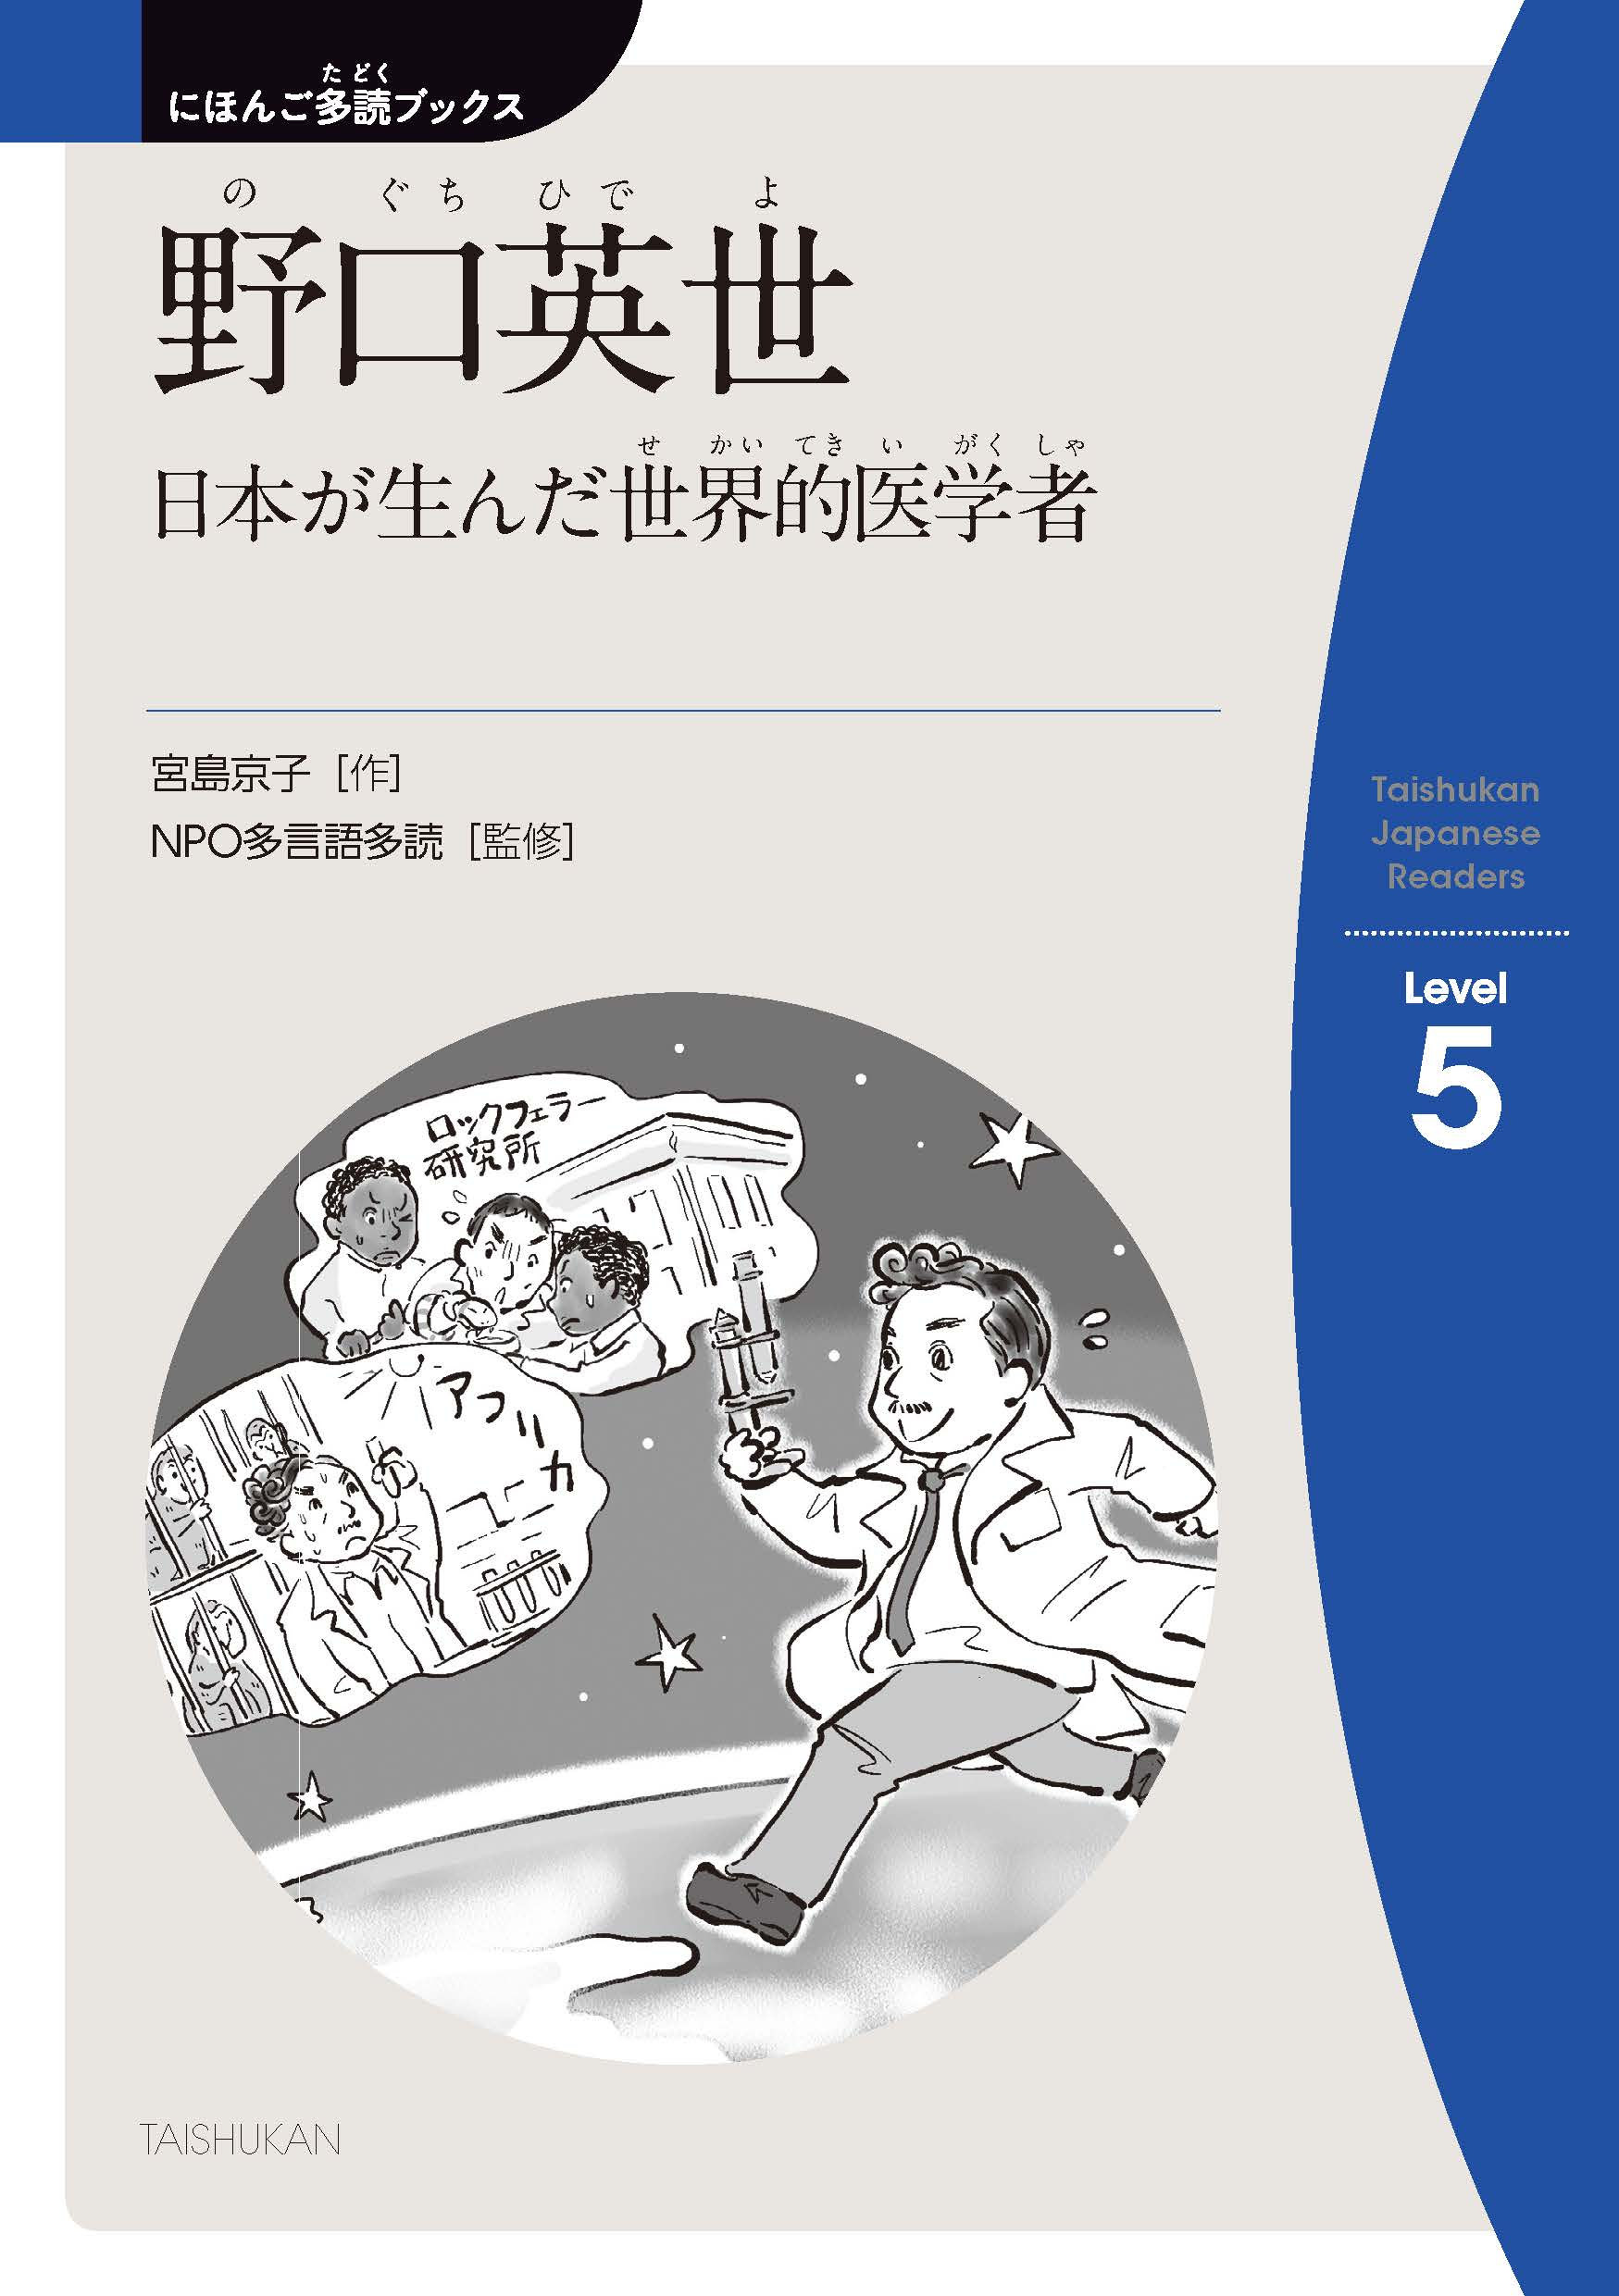 vol.6-4 野口英世(のぐちひでよ)~日本(にほん)が生(う)んだ世界的(せかいてき)医学者(いがくしゃ) Noguchi Hideyo--Doctor, born in Japan but devoted to people all round the world.